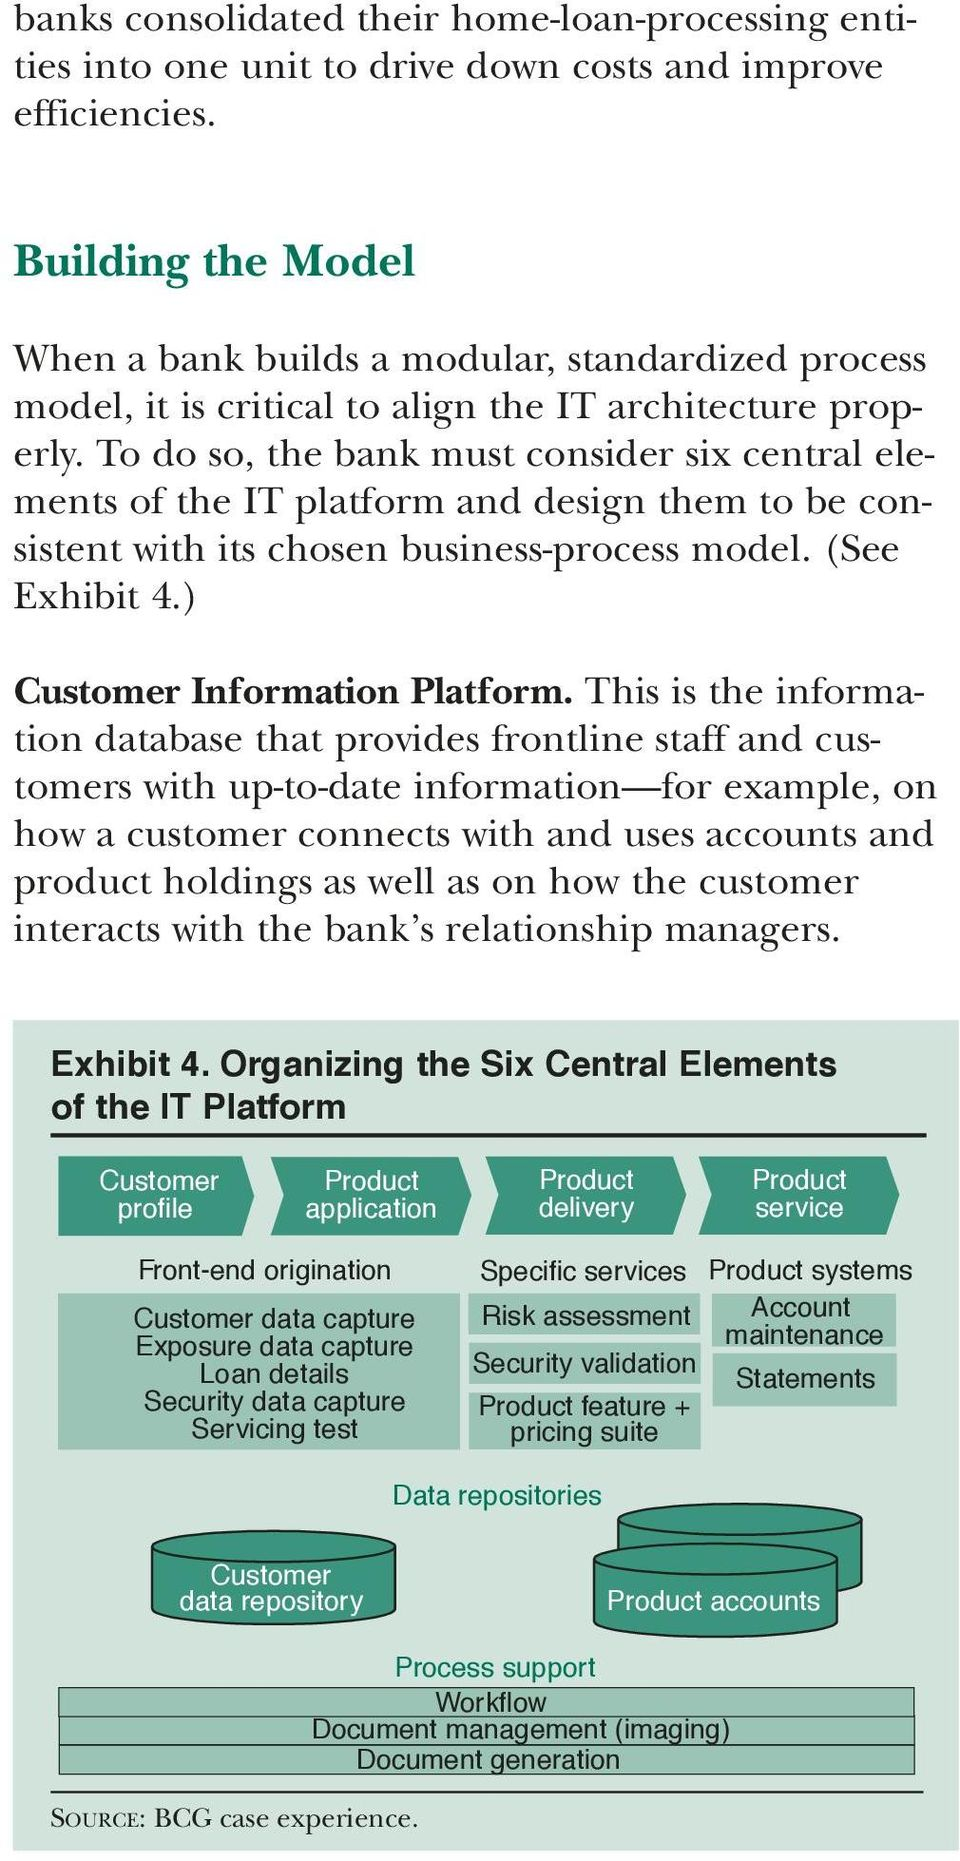 To do so, the bank must consider six central elements of the IT platform and design them to be consistent with its chosen business-process model. (See Exhibit 4.) Information Platform.